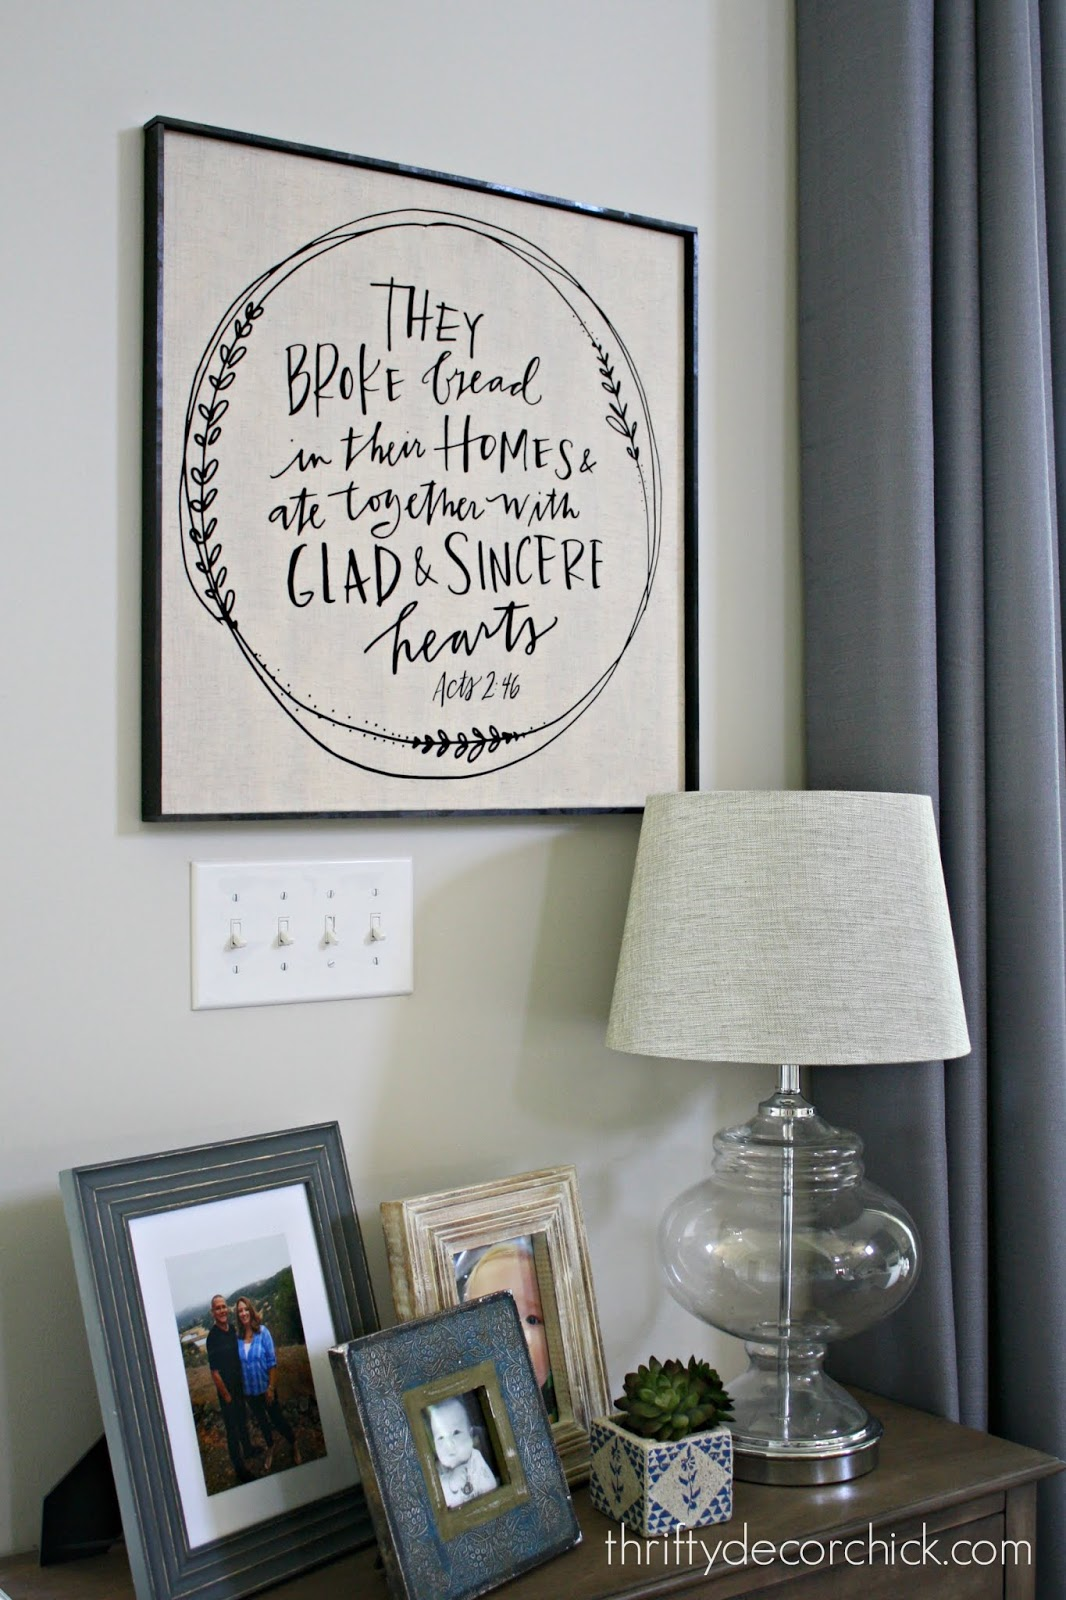 DIY framed art using a tea towel or fabric